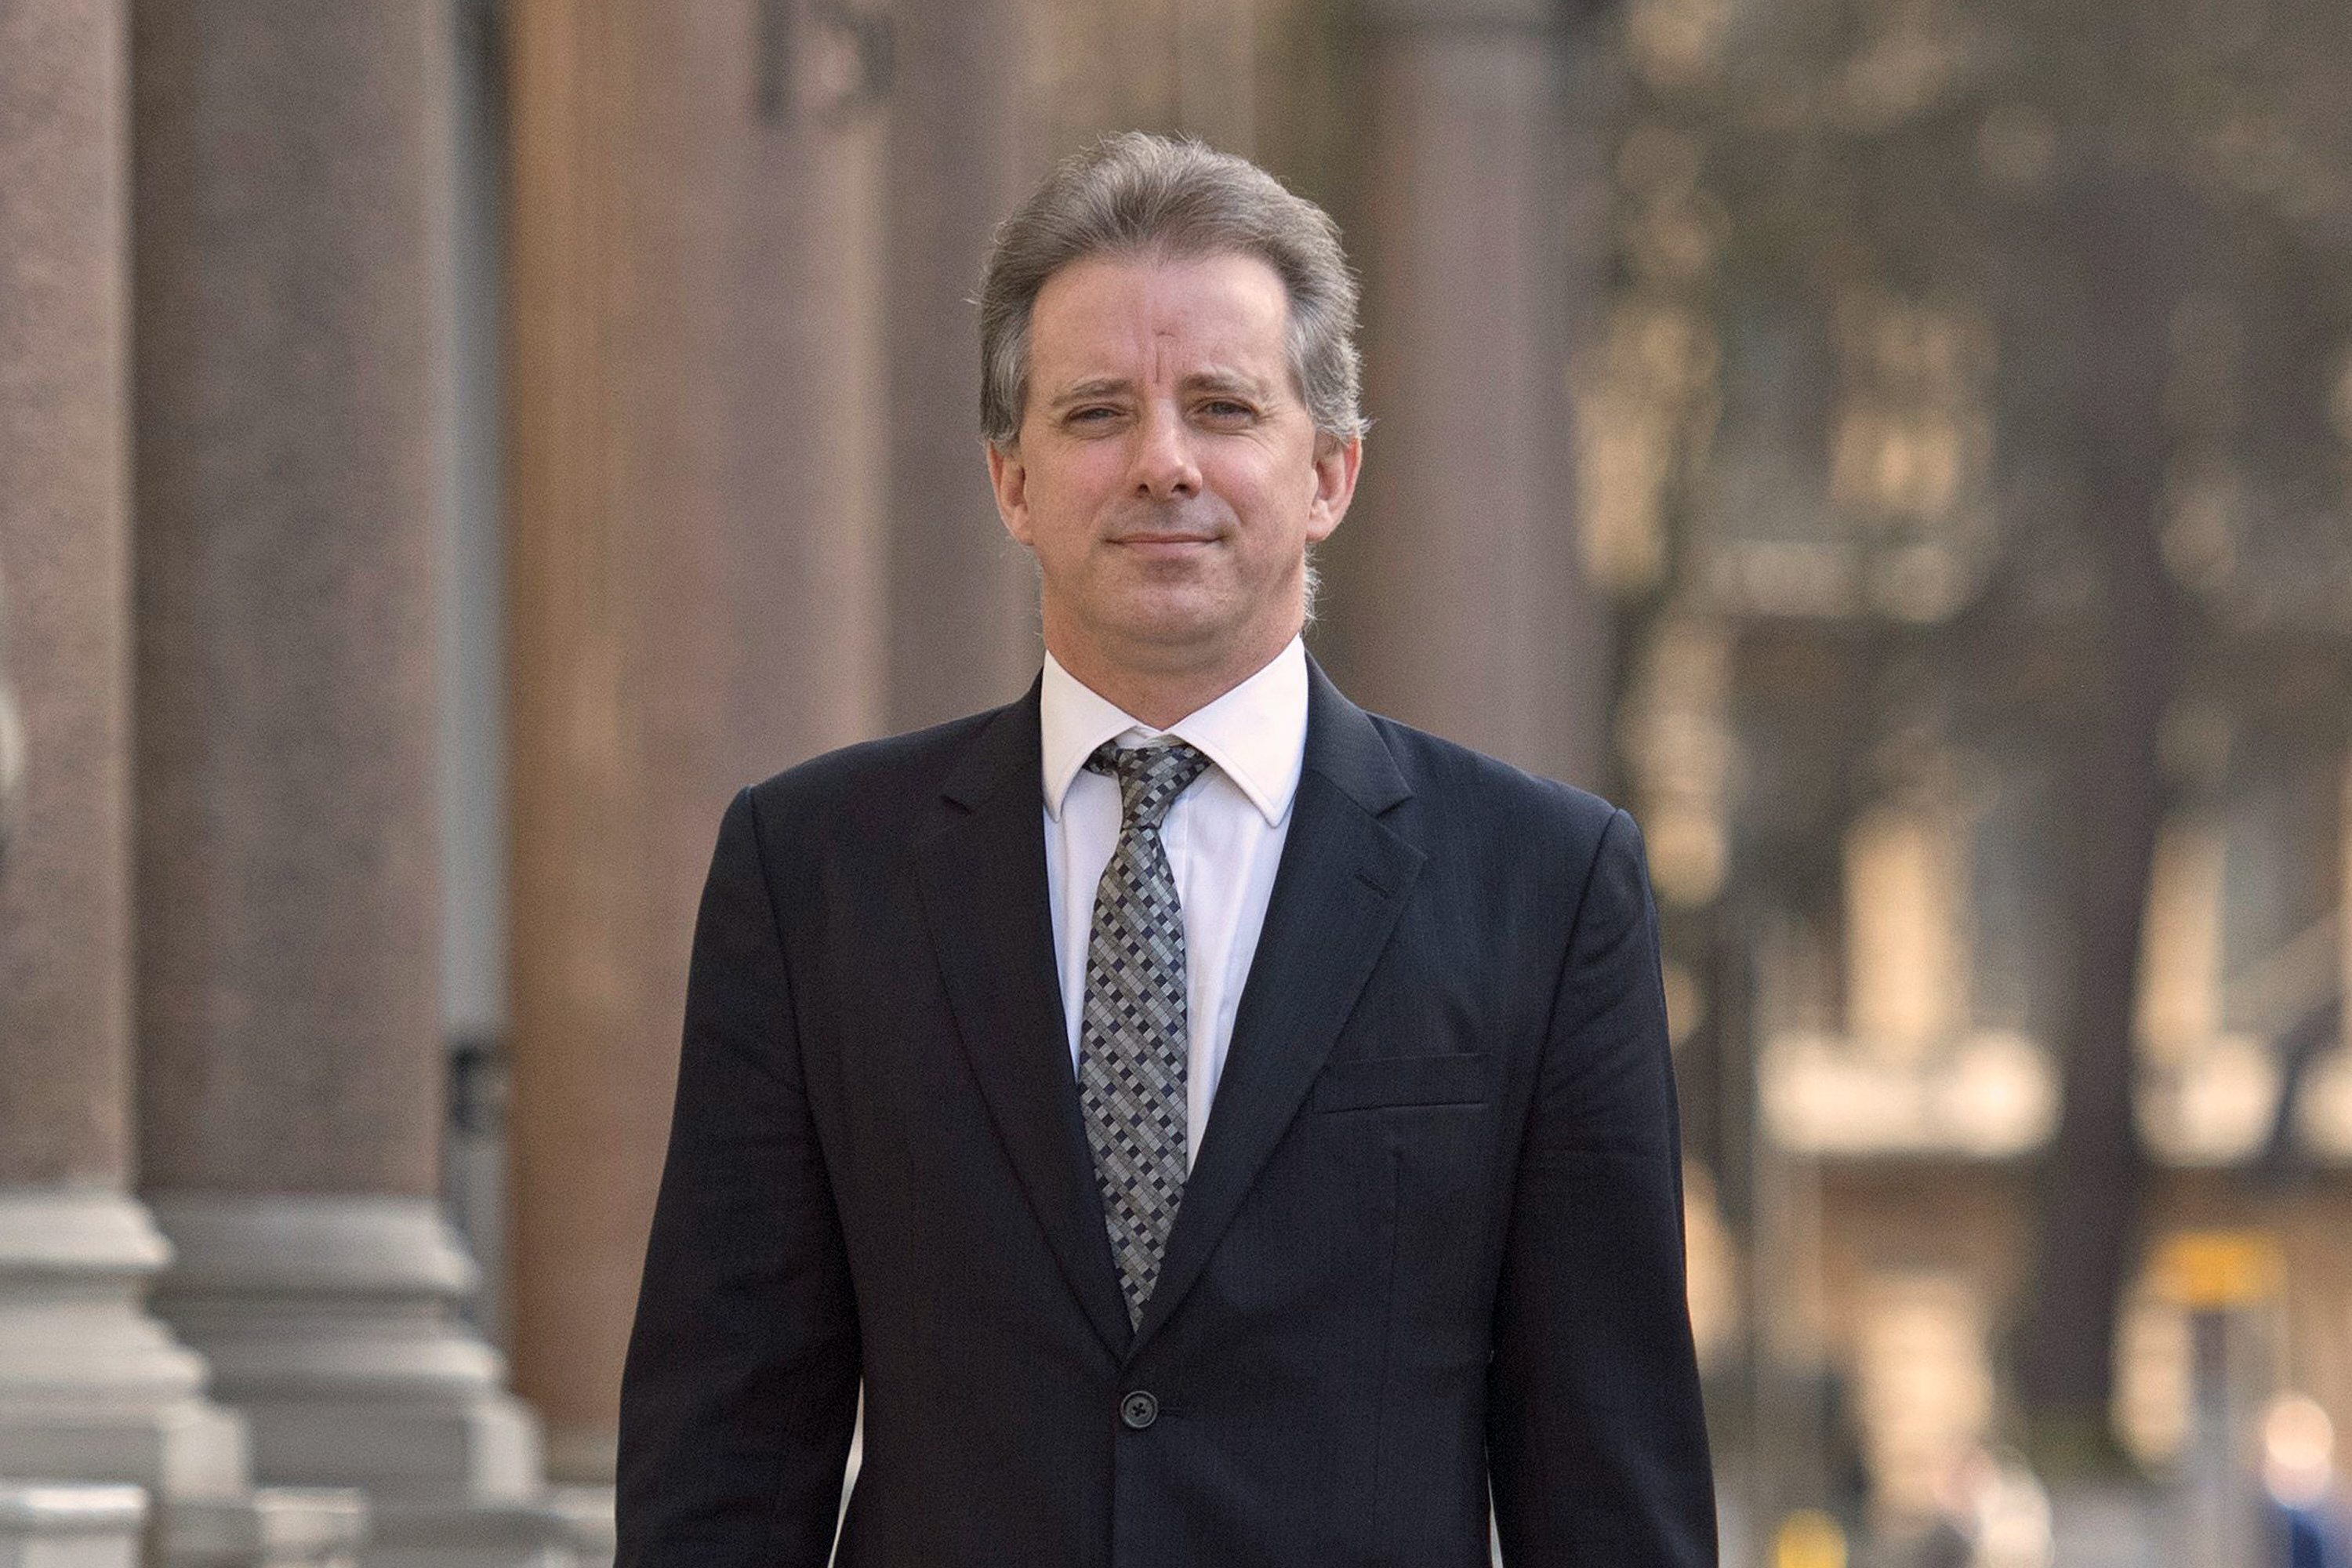 Bruce Ohr 302s show Christopher Steele, Trump dossier author, feared Congressional investigations